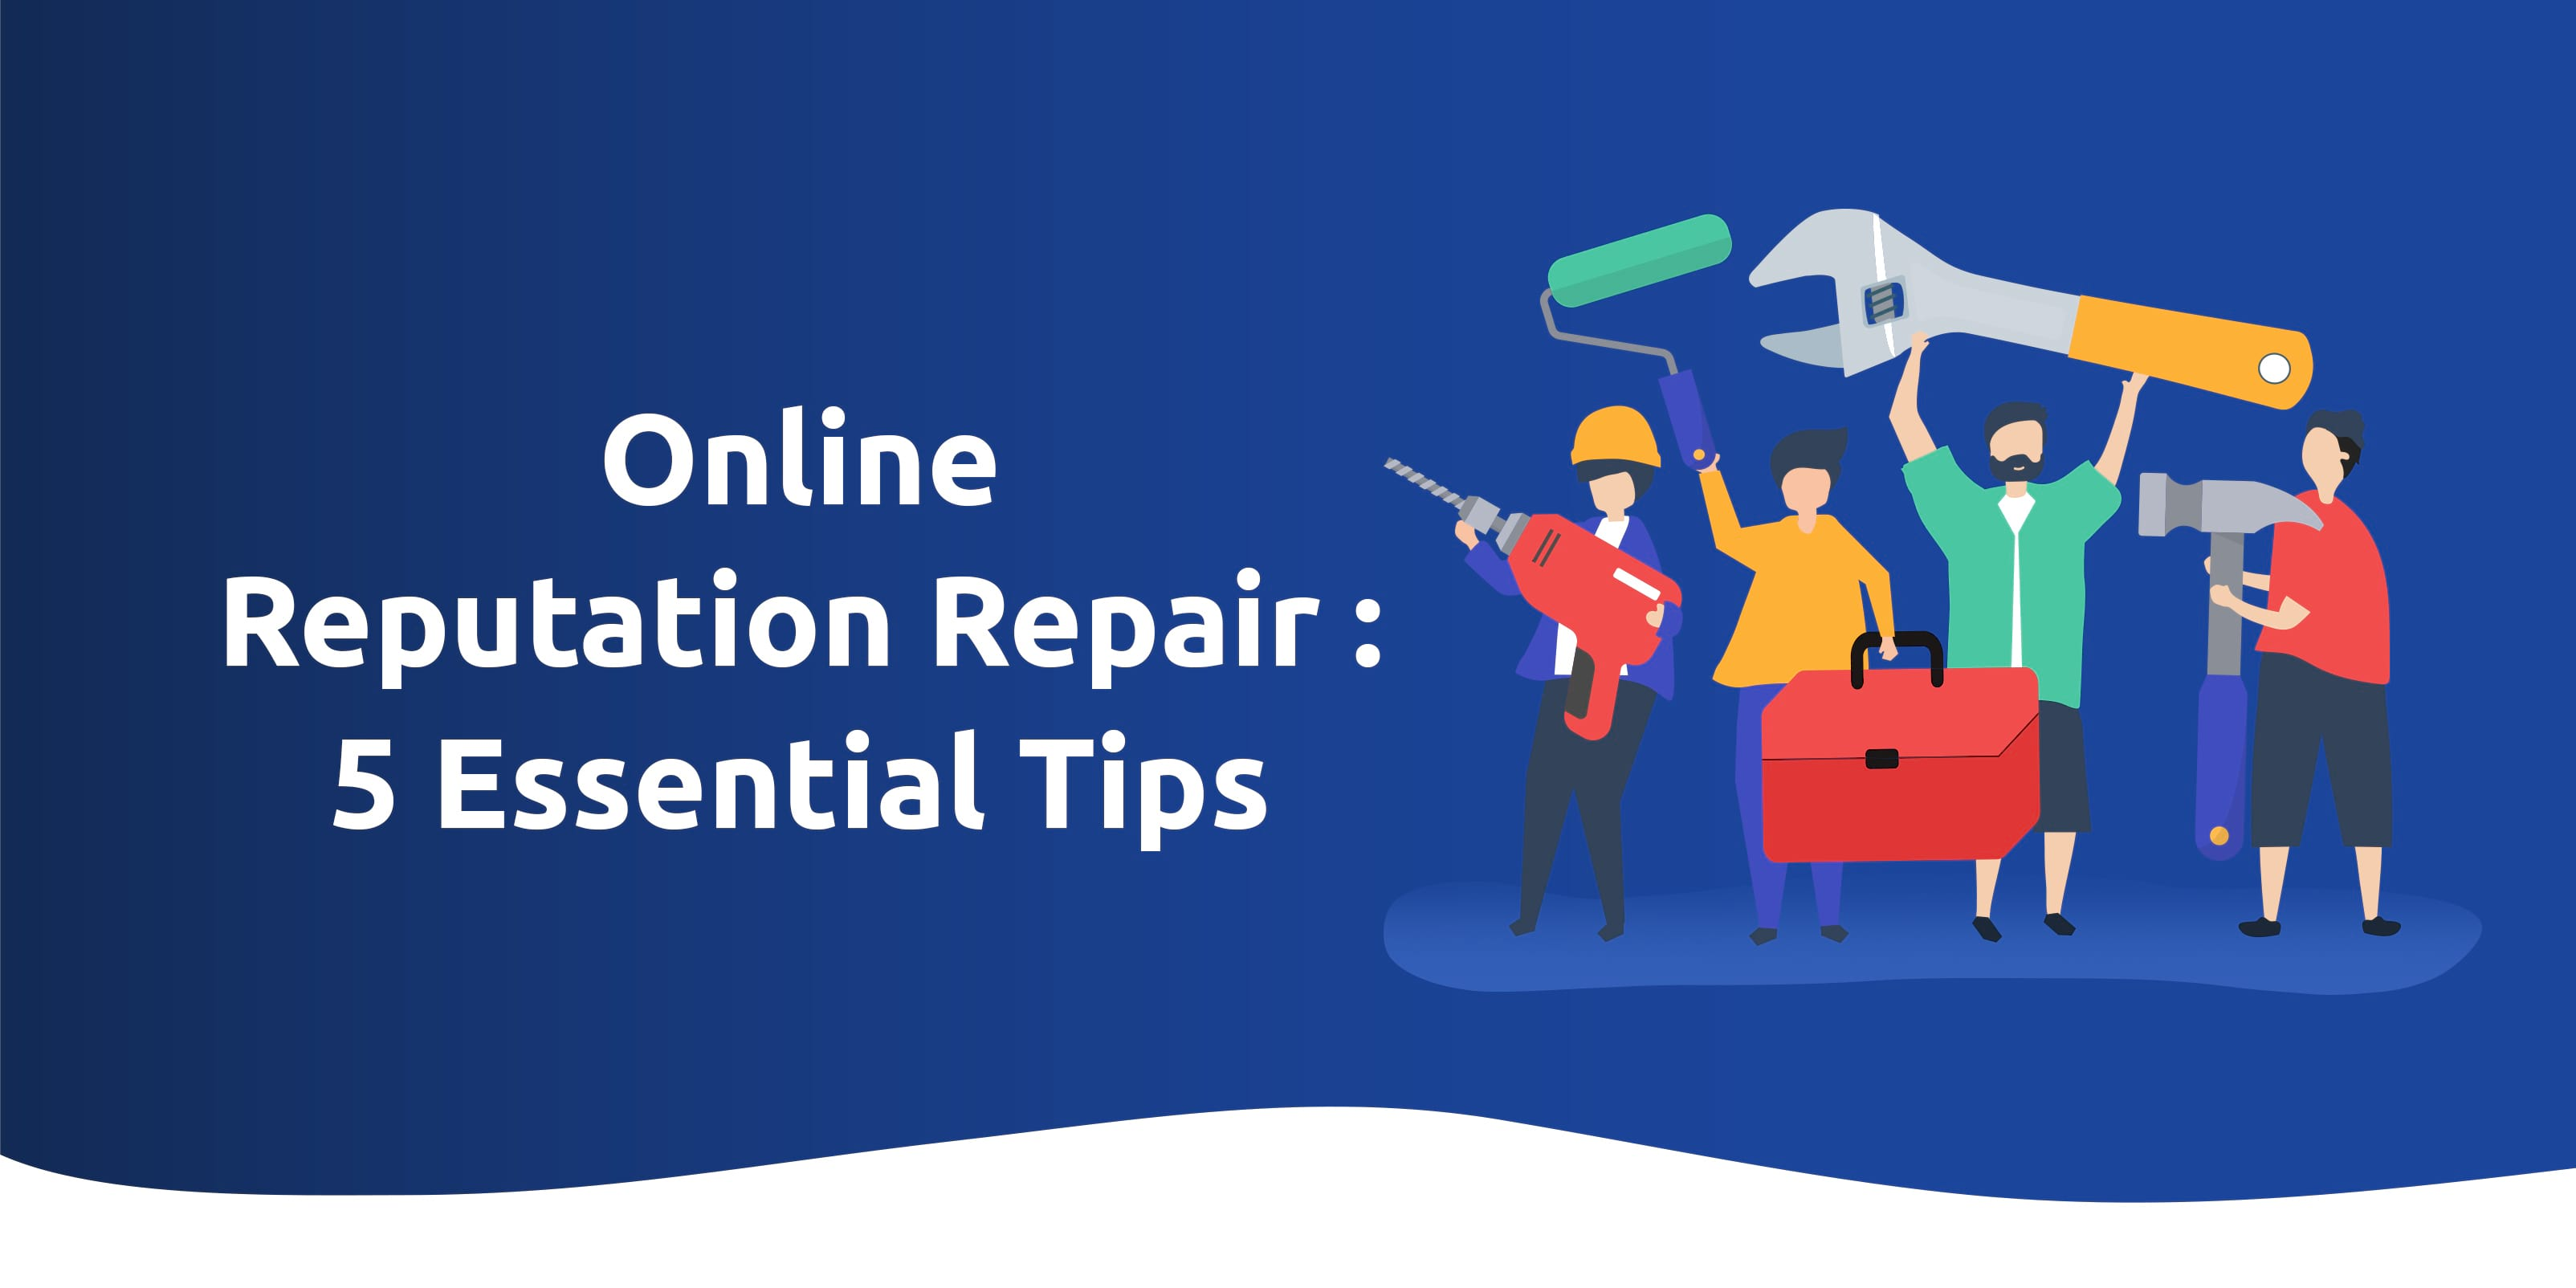 Online Reputation Repair: 5 Essential Tips